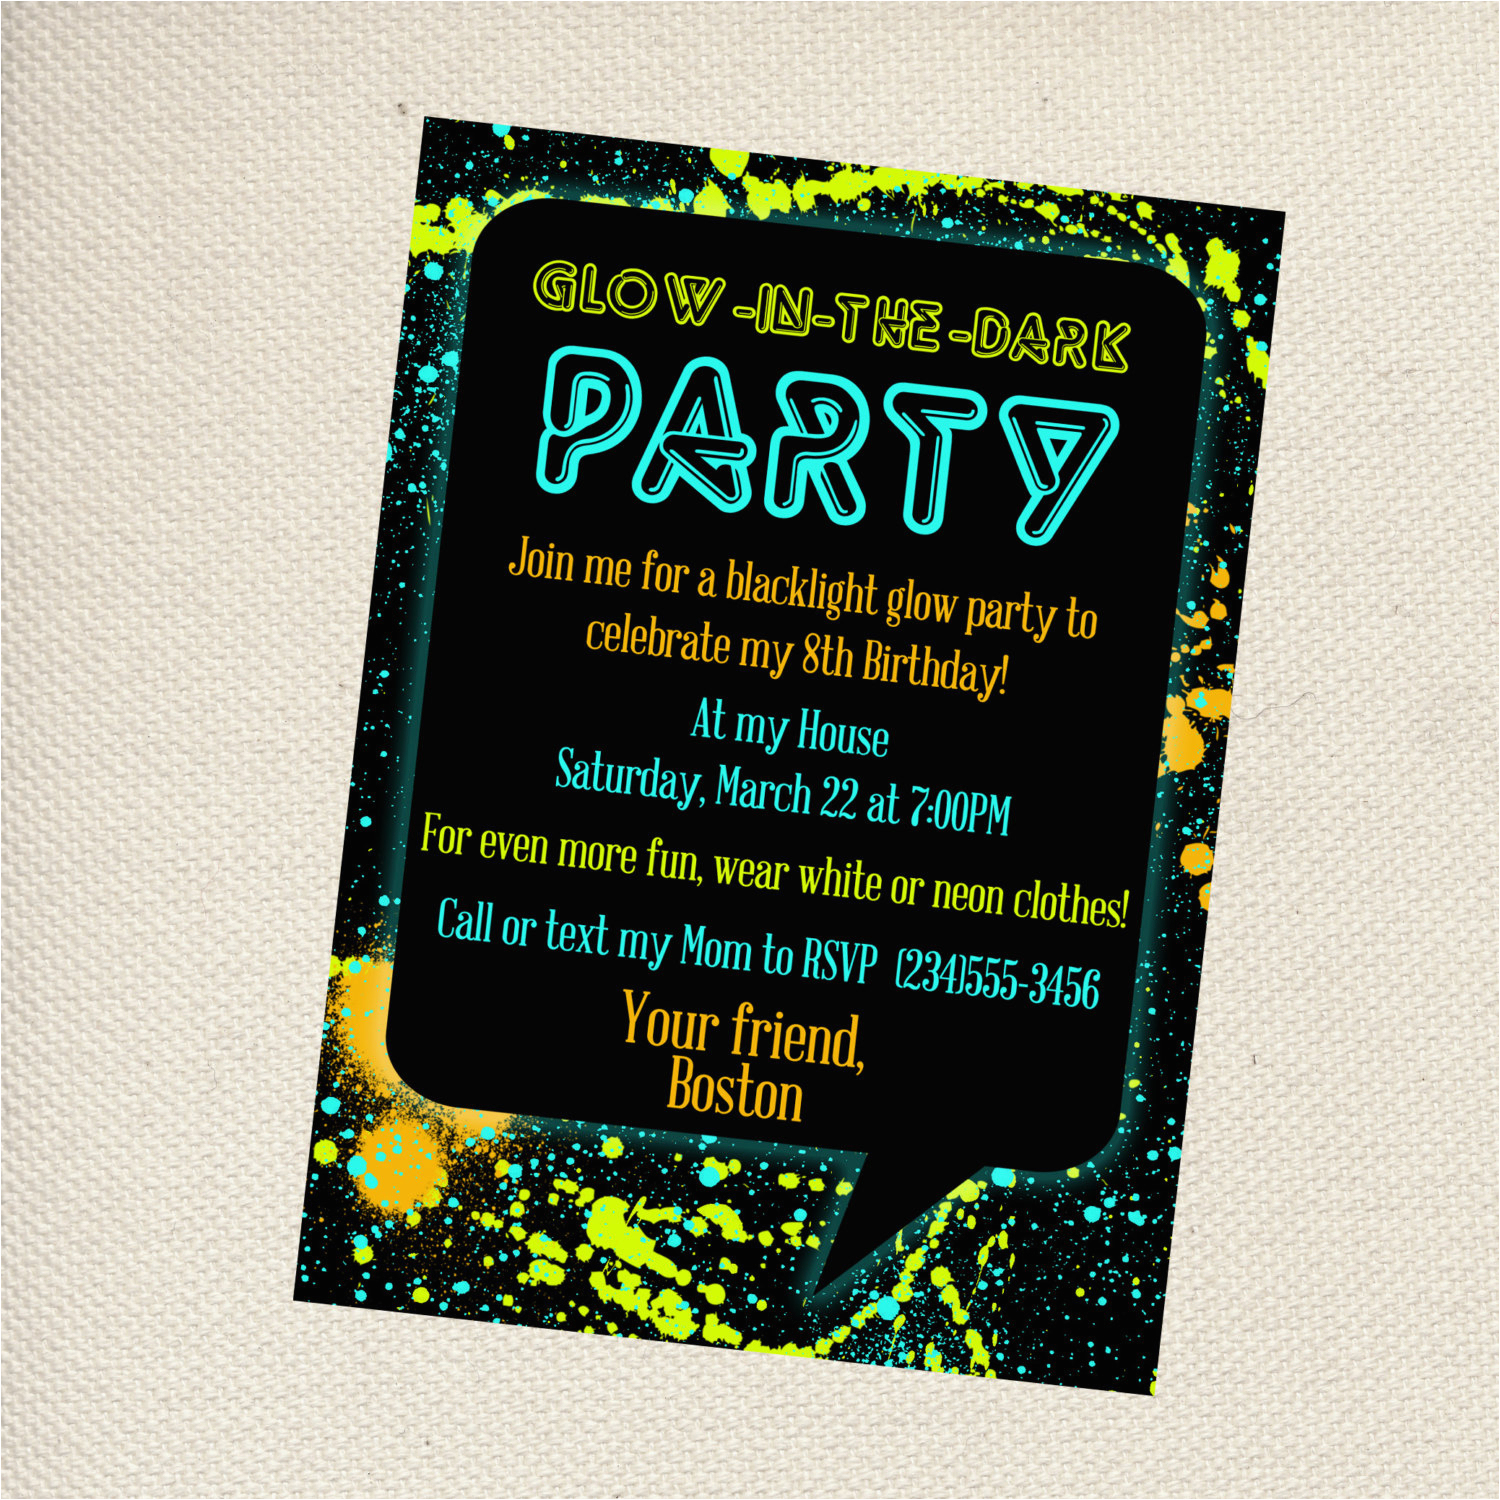 Free Printable Glow In The Dark Birthday Party Invitations Create - Free Printable Glow In The Dark Birthday Party Invitations